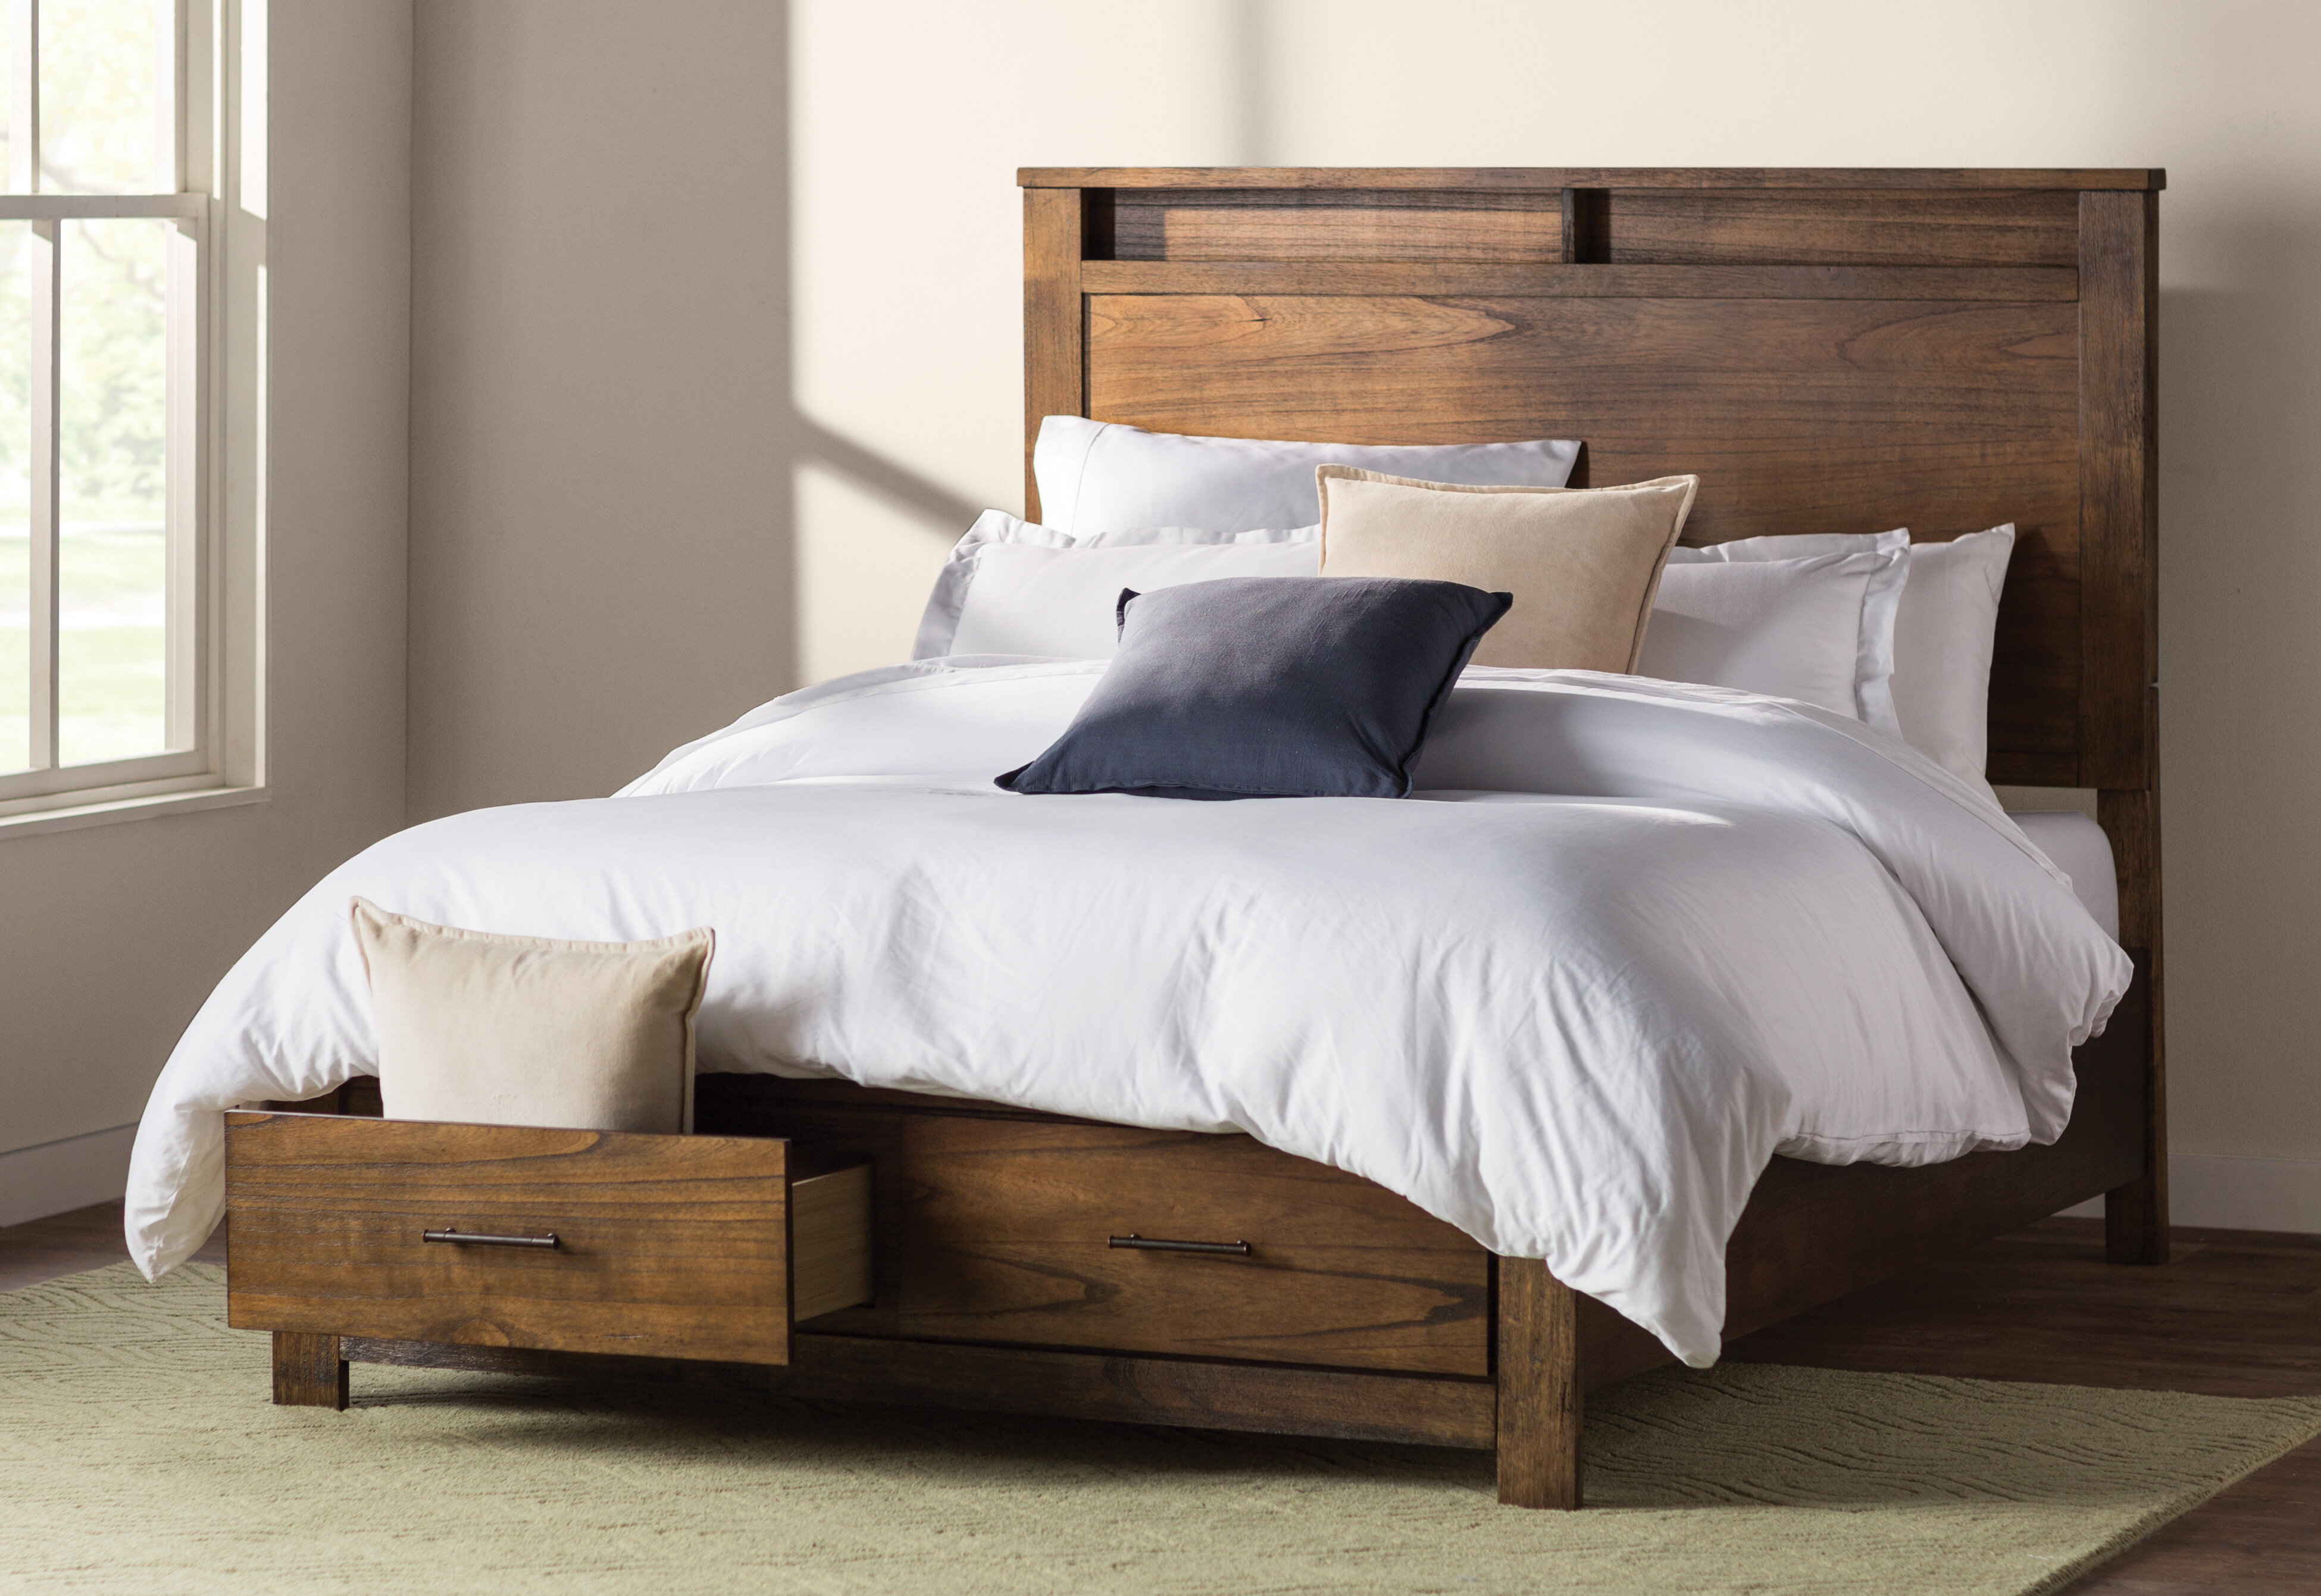 today den home bed charlie garden shipping platform free bricktown product overstock porch